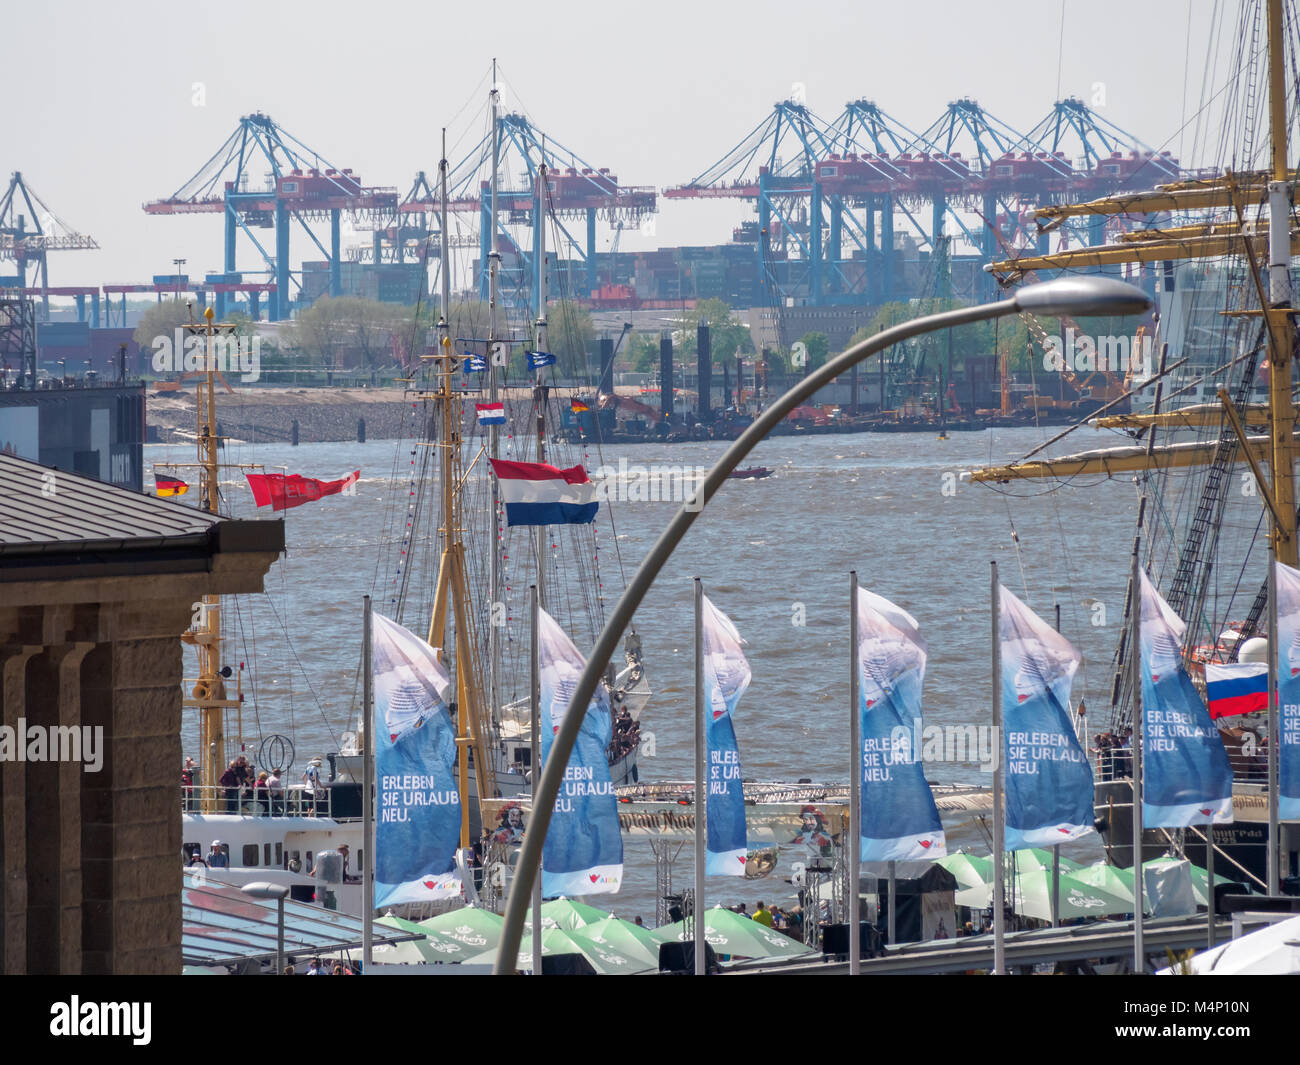 Hamburg, Germany - May 07, 2016: During the harbour's birthday , there are a lot of decorative waving flags - Stock Image